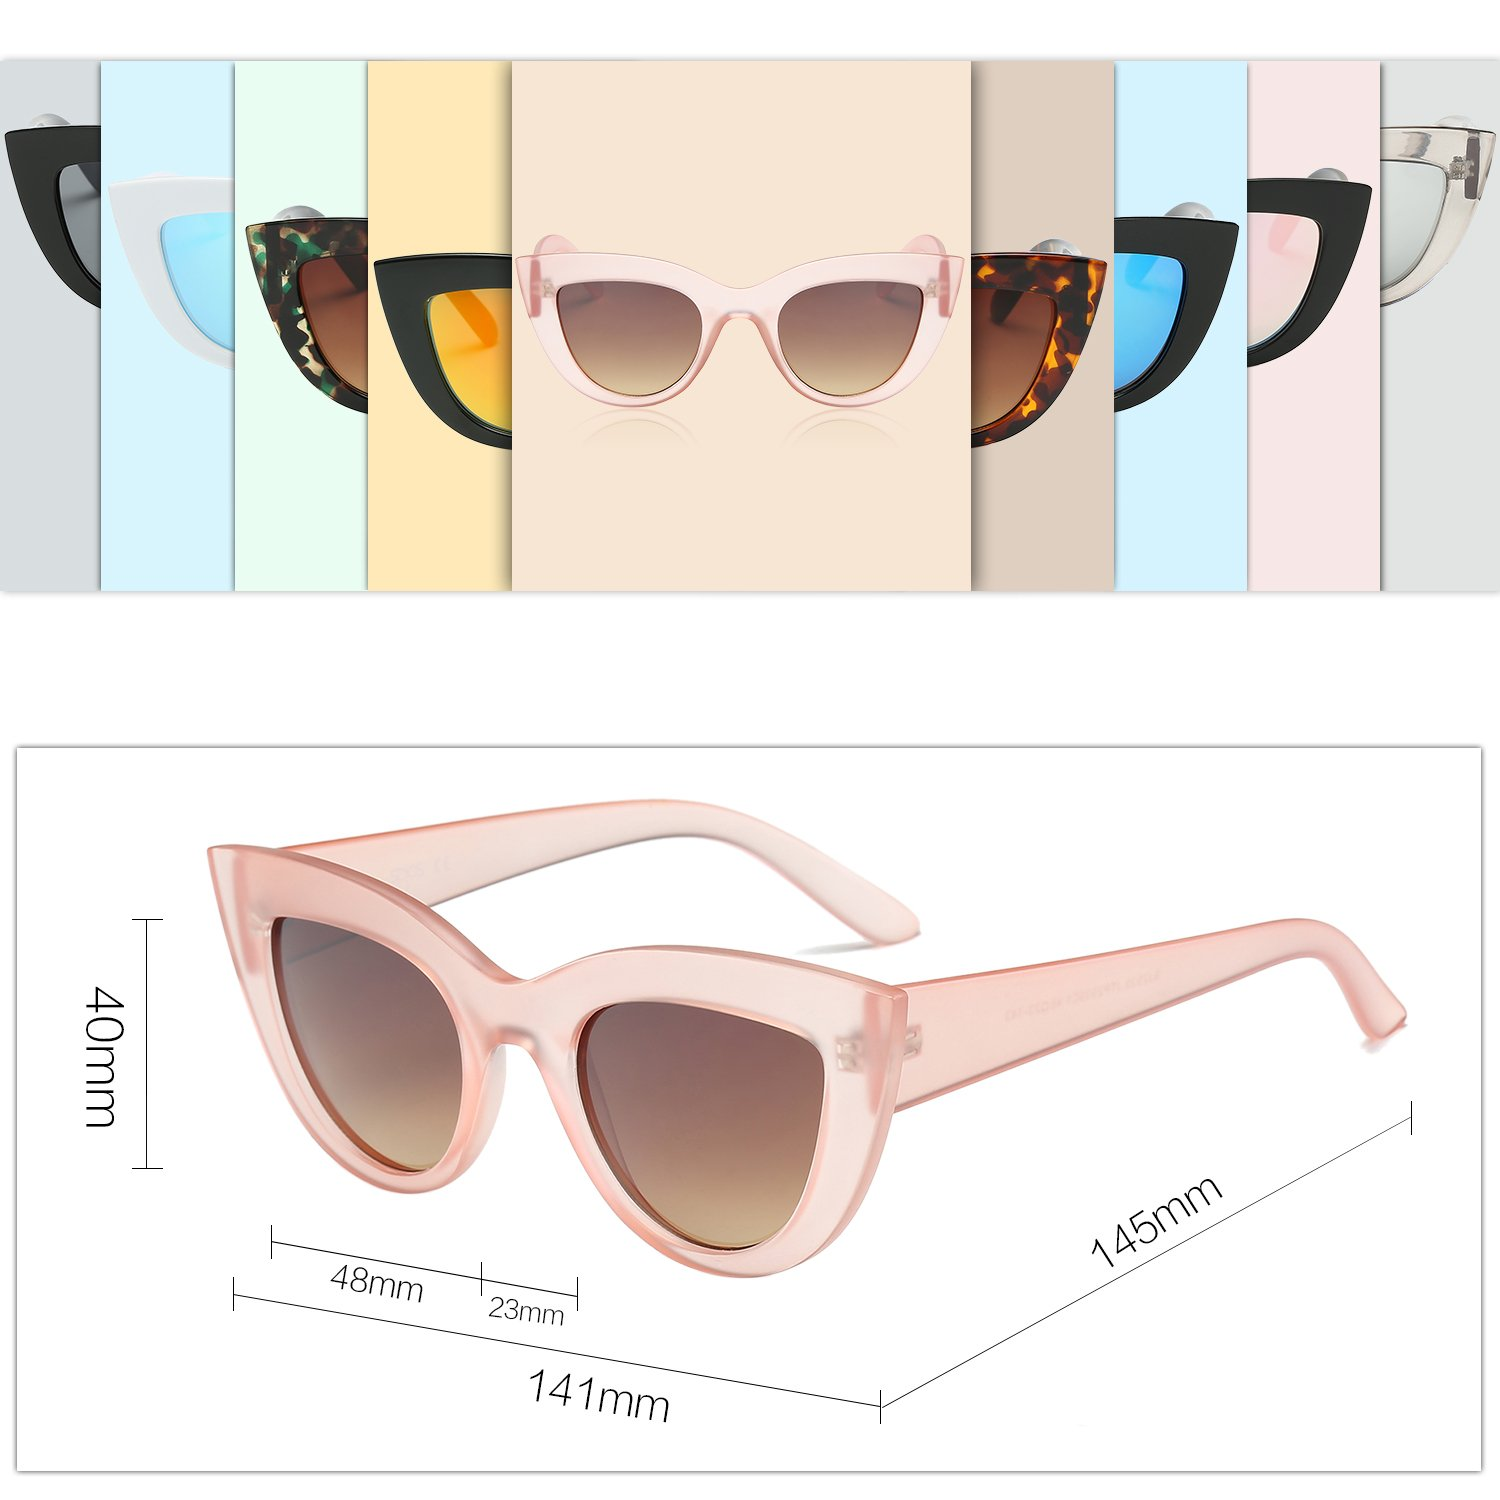 1e19023875a71 SojoS Retro Vintage Cateye Sunglasses for Women Plastic Frame Mirrored Lens  SJ2939 With Pink Frame Brown Lens